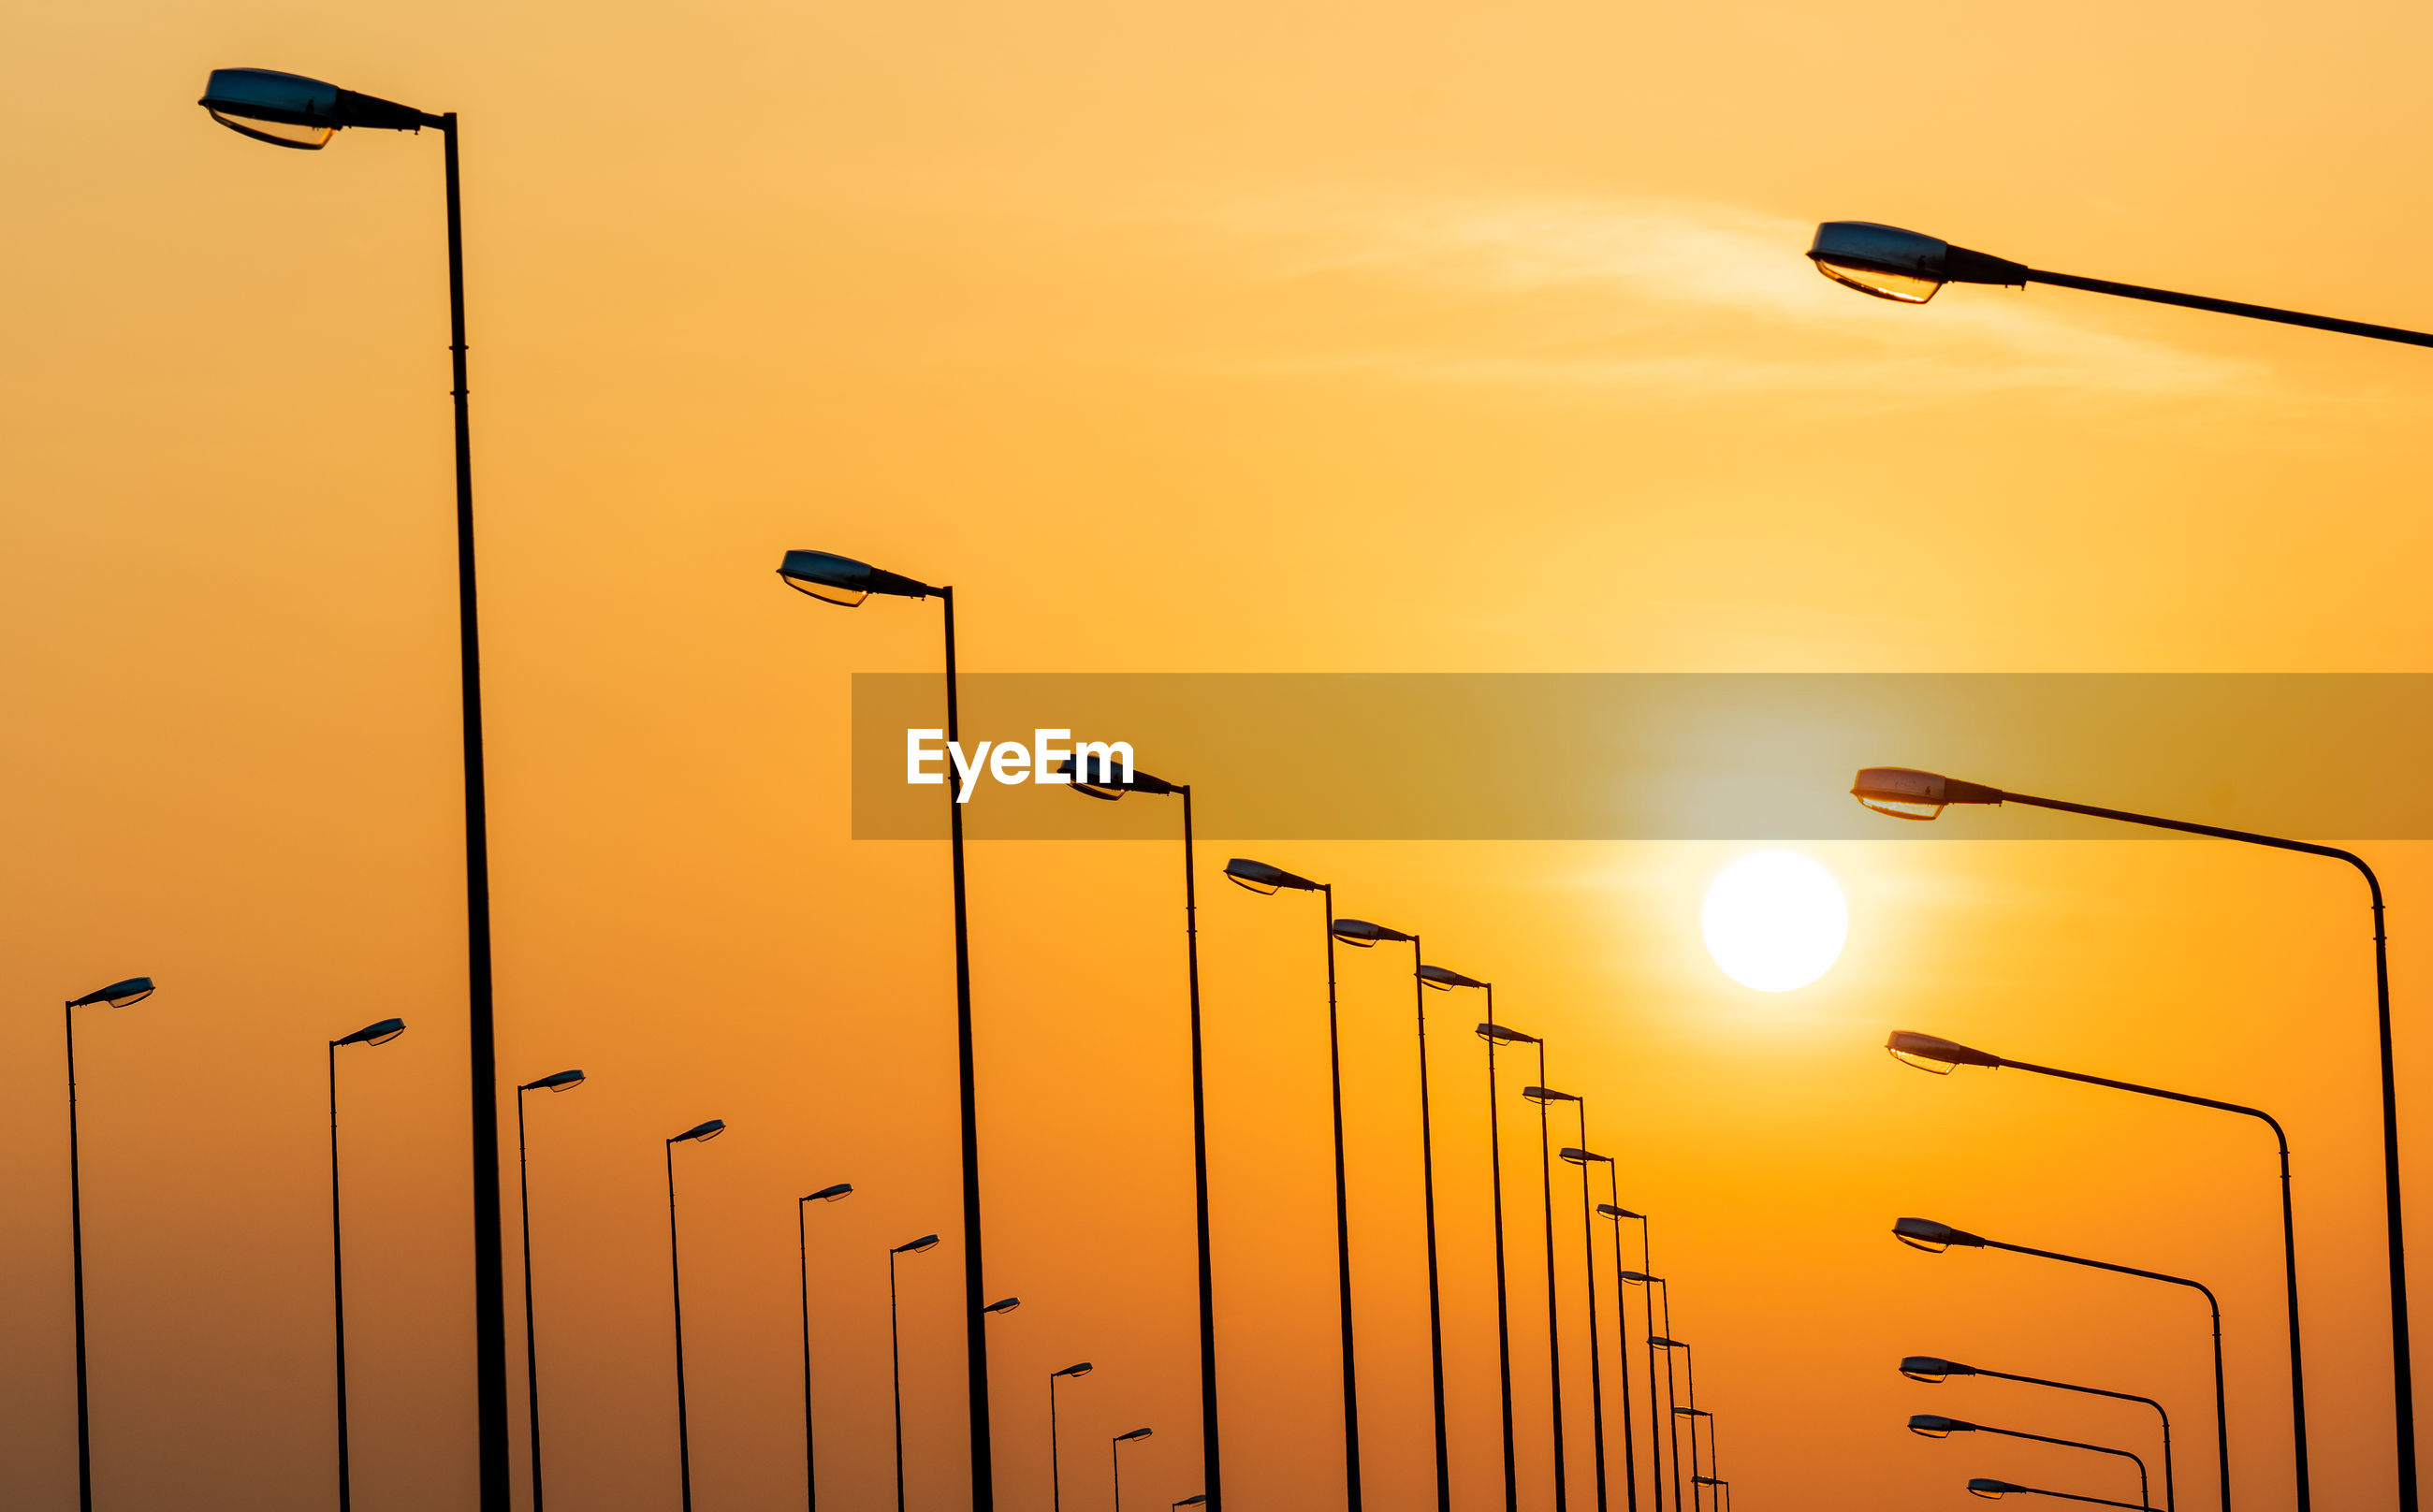 LOW ANGLE VIEW OF STREET LIGHT AGAINST ORANGE SKY